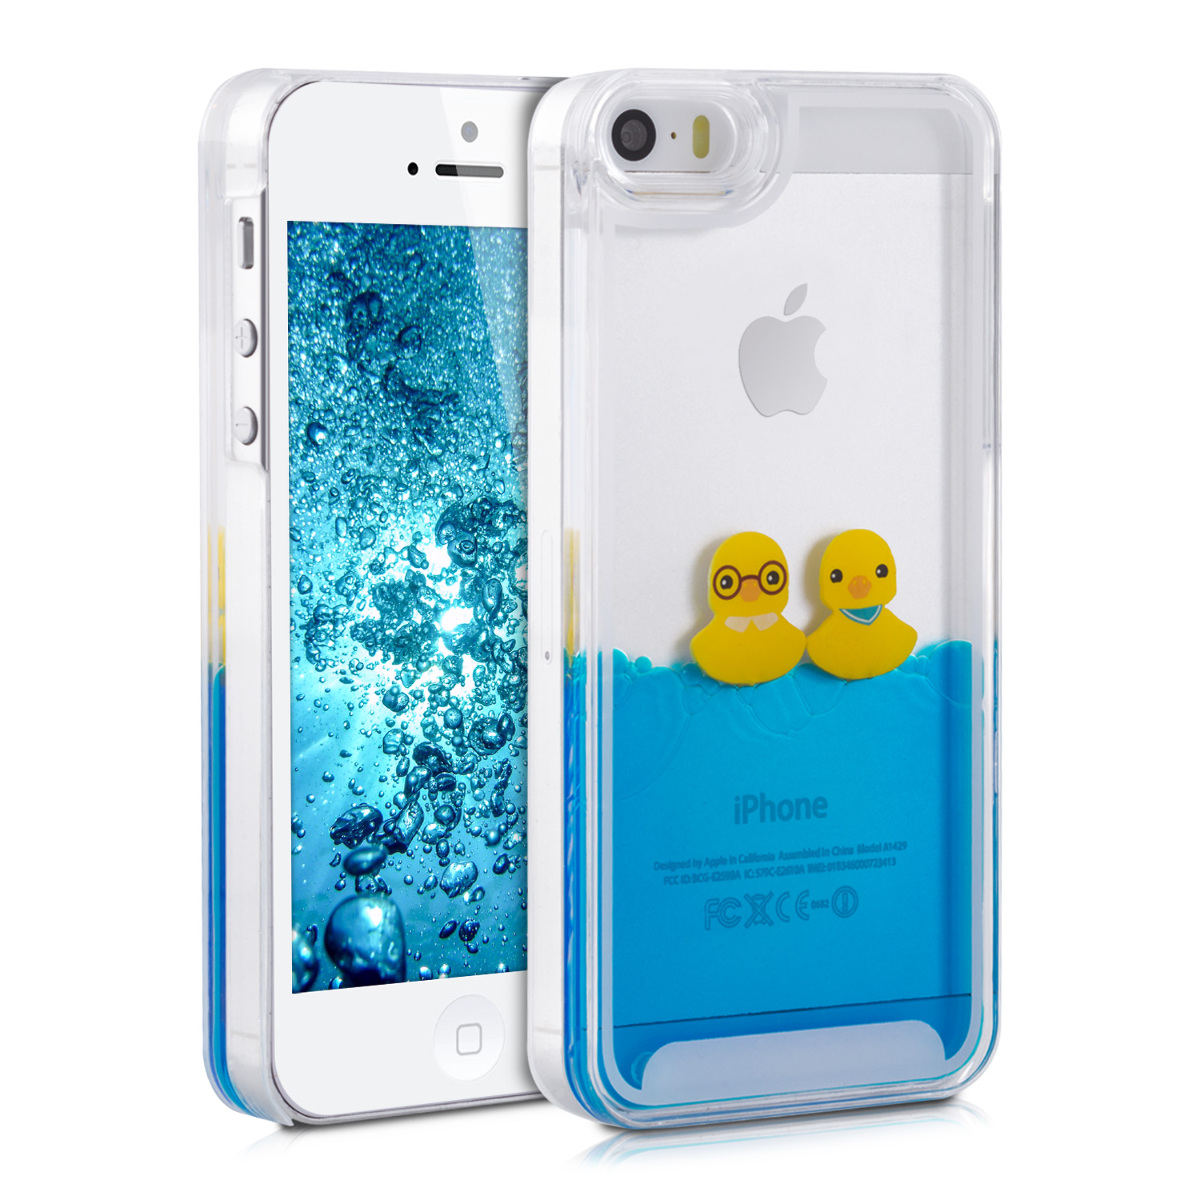 hard case cover water for apple iphone se 5 5s mobile phone liquid bumper cover 4057665532267 ebay. Black Bedroom Furniture Sets. Home Design Ideas